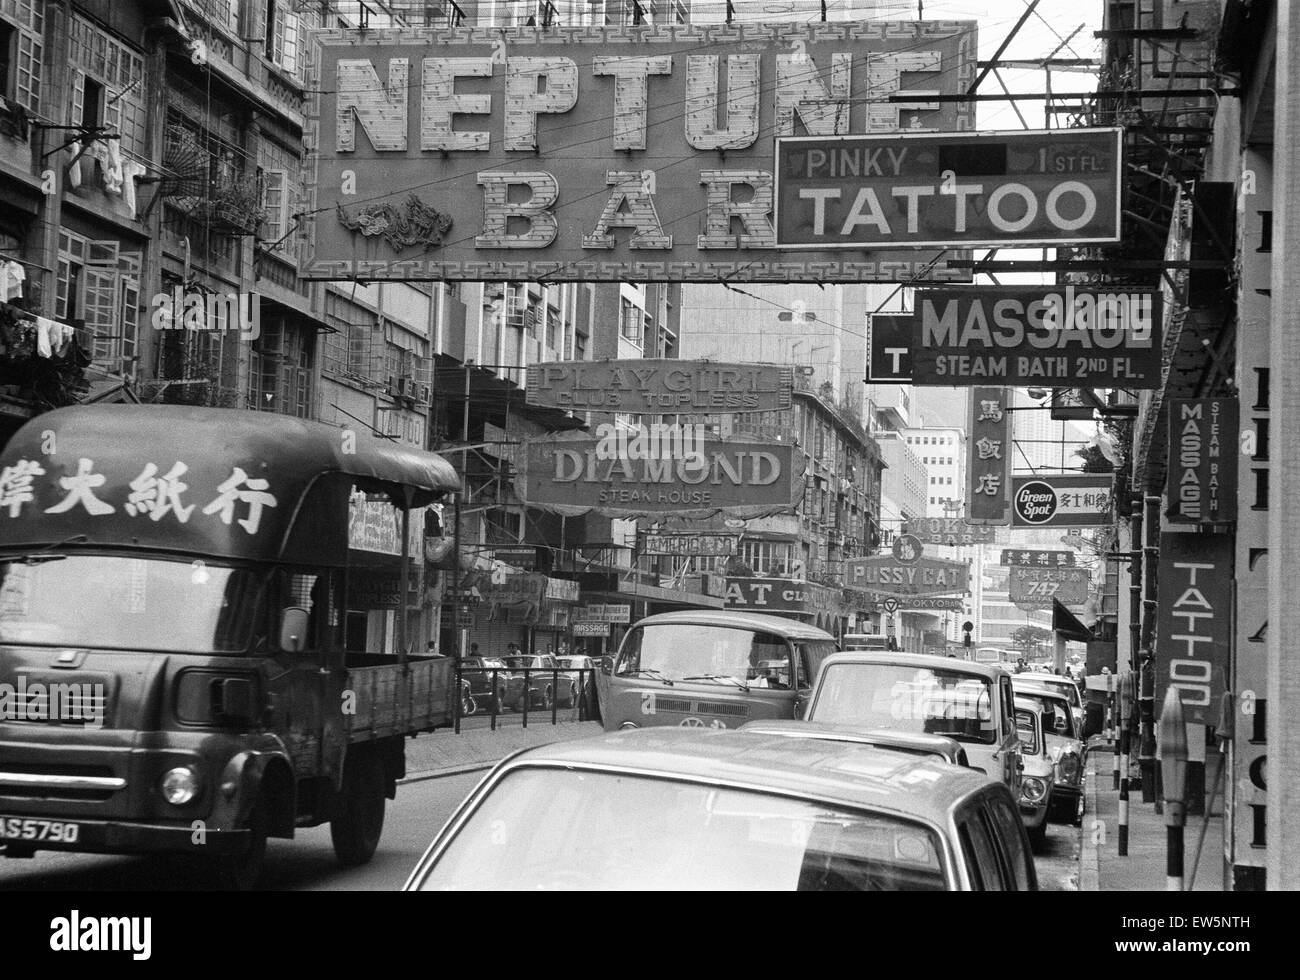 Traffic and signs advertising night clubs, tattoo and massage parlours seen here on Lockhart Road, Wanchai, Hong - Stock Image